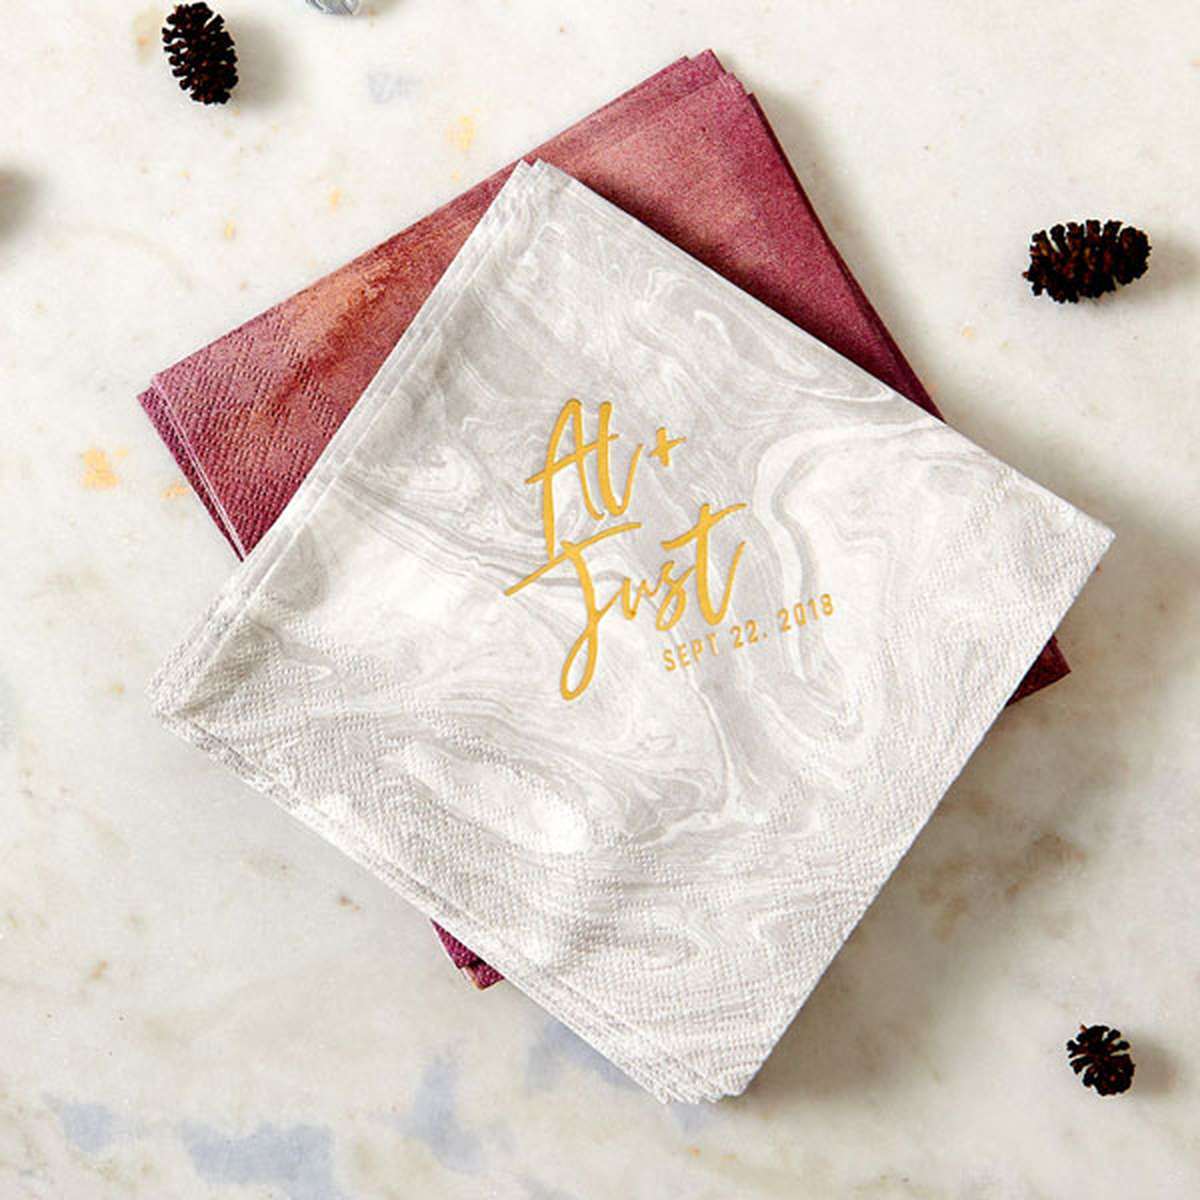 Cheap Wedding Napkin.Wedding Napkins Matches Cups And Favors For Your Party